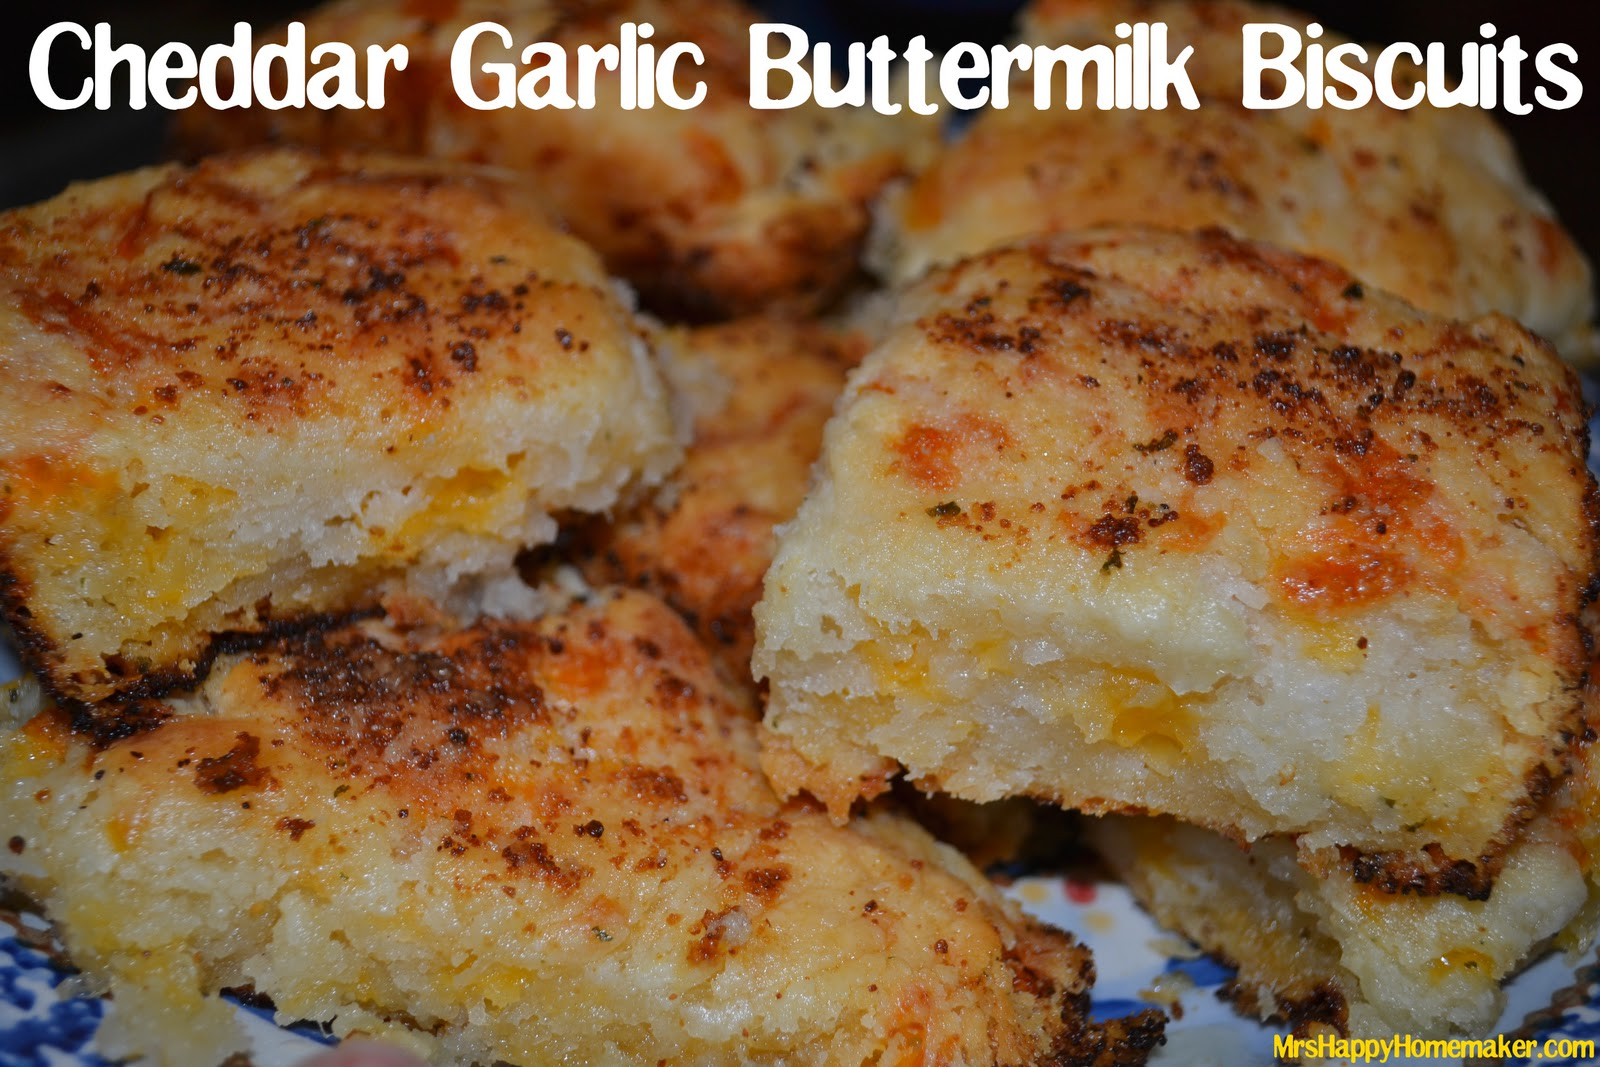 biscuits cheesy garlicy peppery biscuits buttermilk biscuits